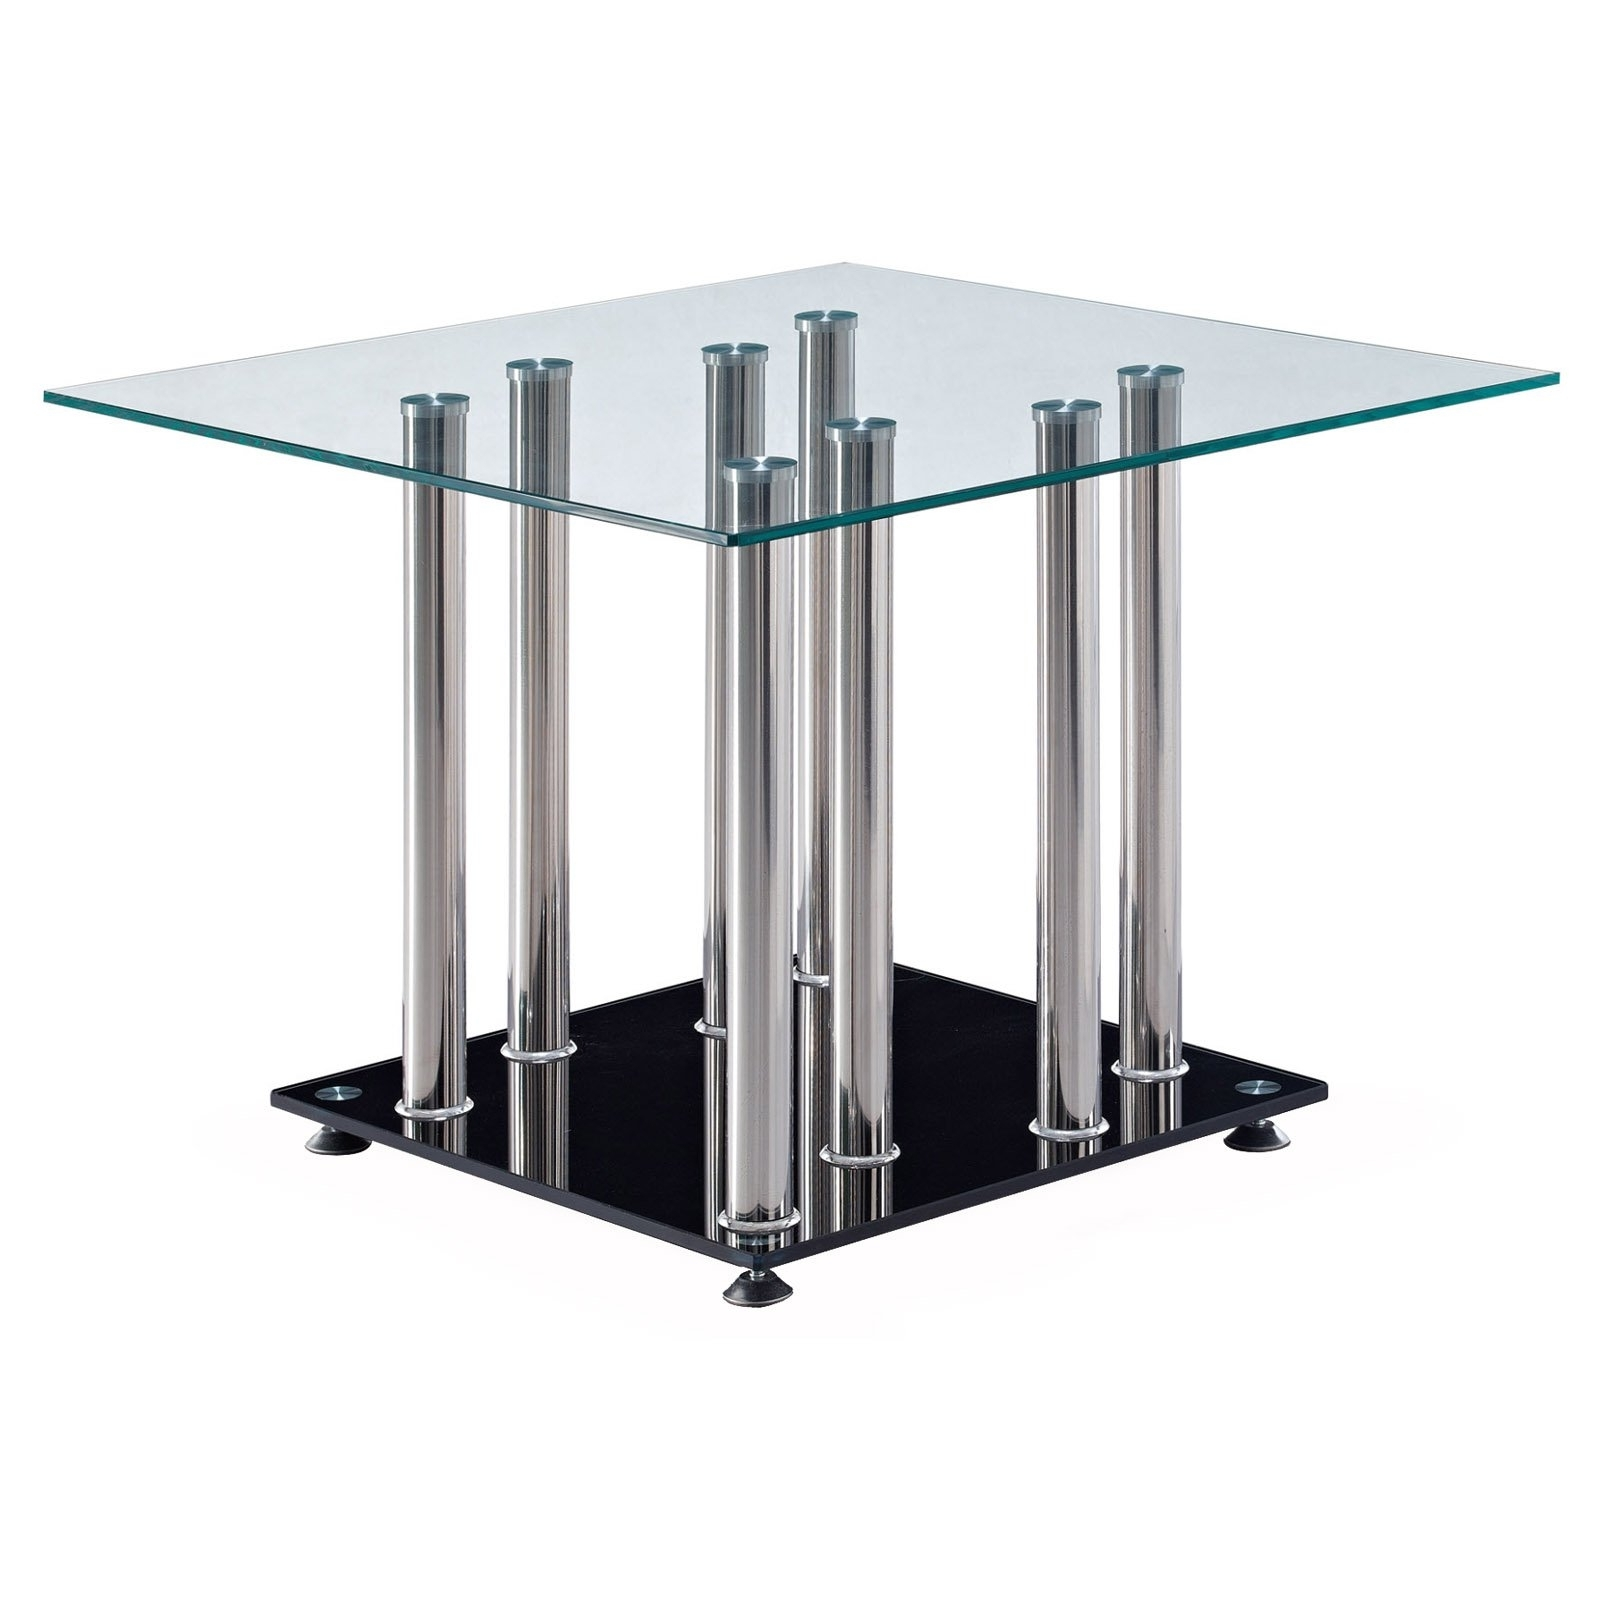 Fashionable 8 Stainless Steel Pipe Dining Table Legs With Square Glass Table Top Pertaining To Square Black Glass Dining Tables (View 16 of 25)